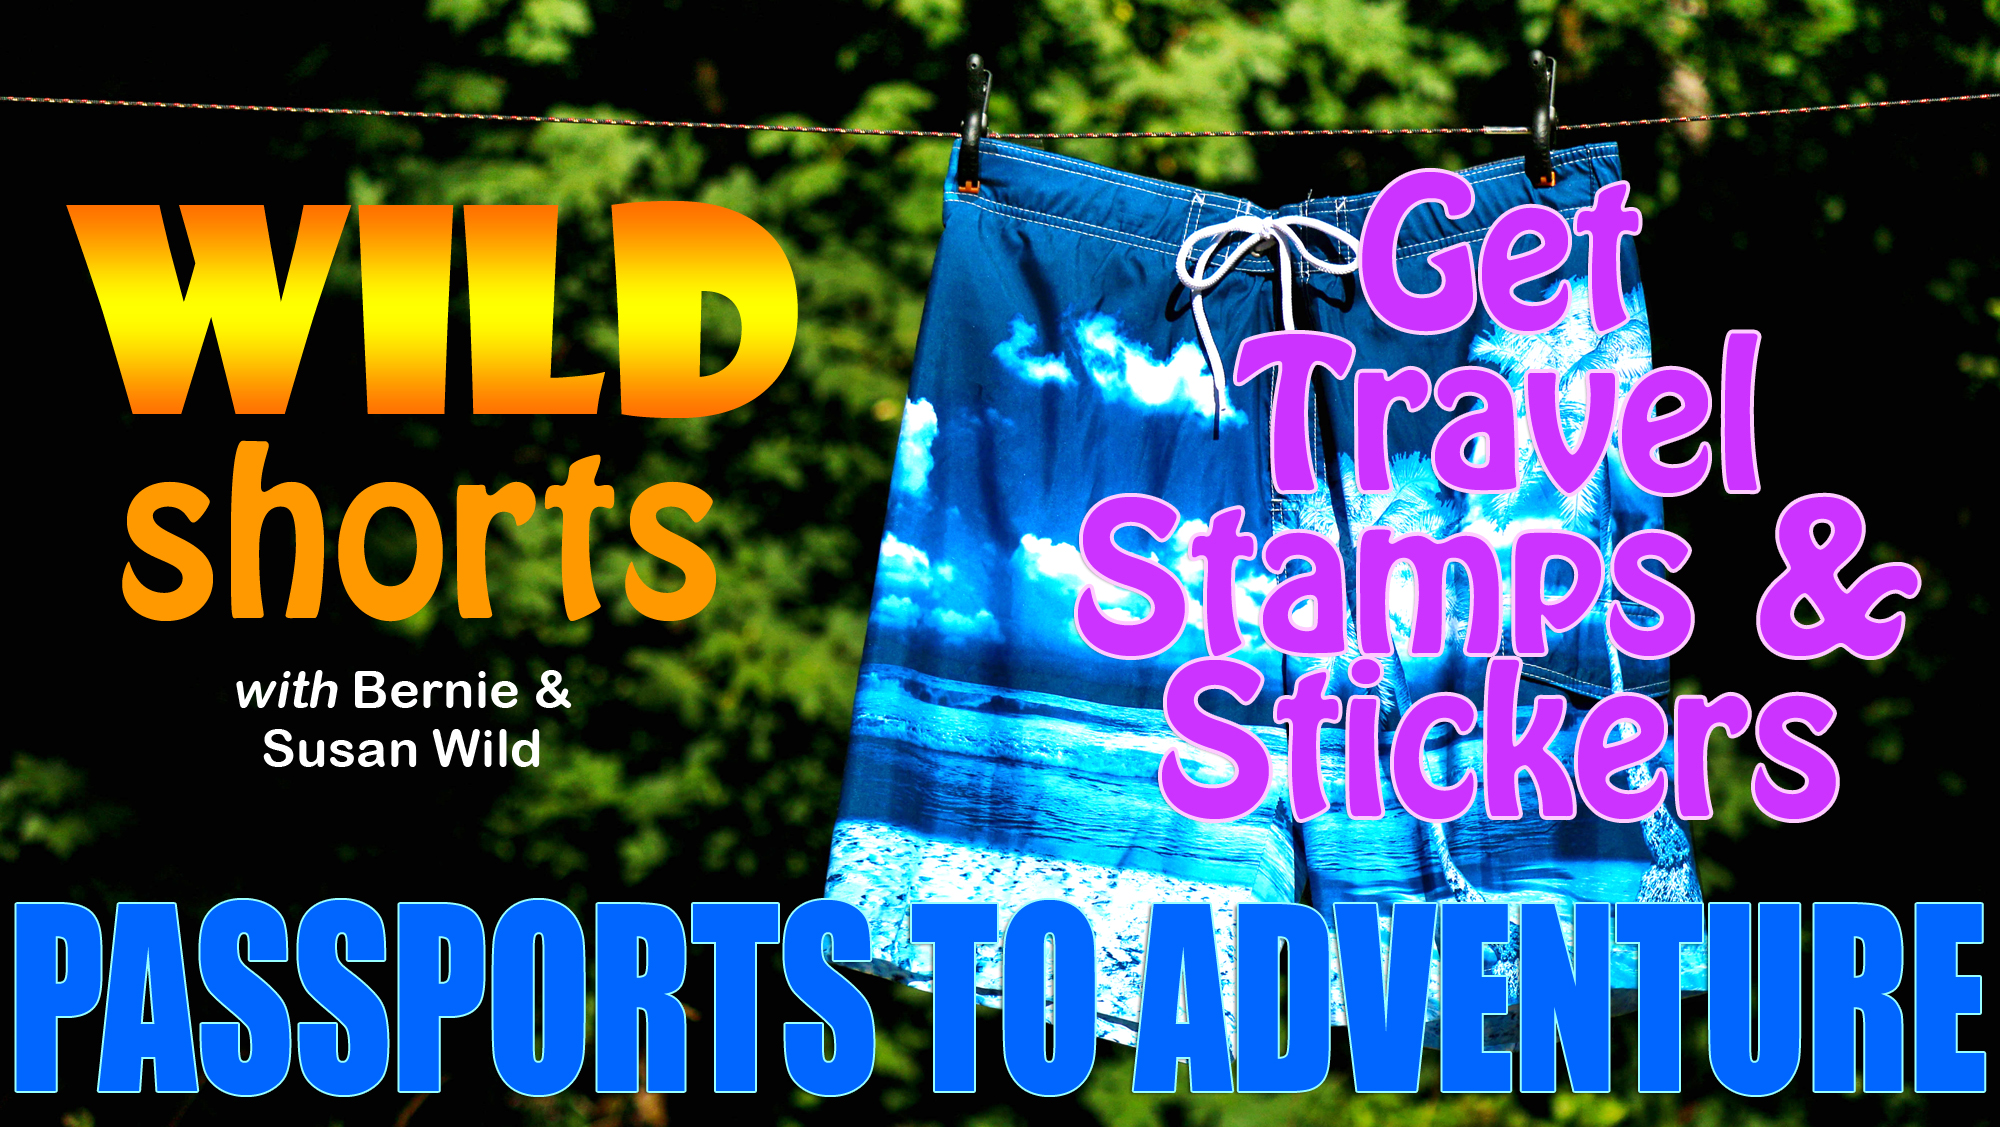 Recreation and Travel Destination Passports for Stamps and Stickers